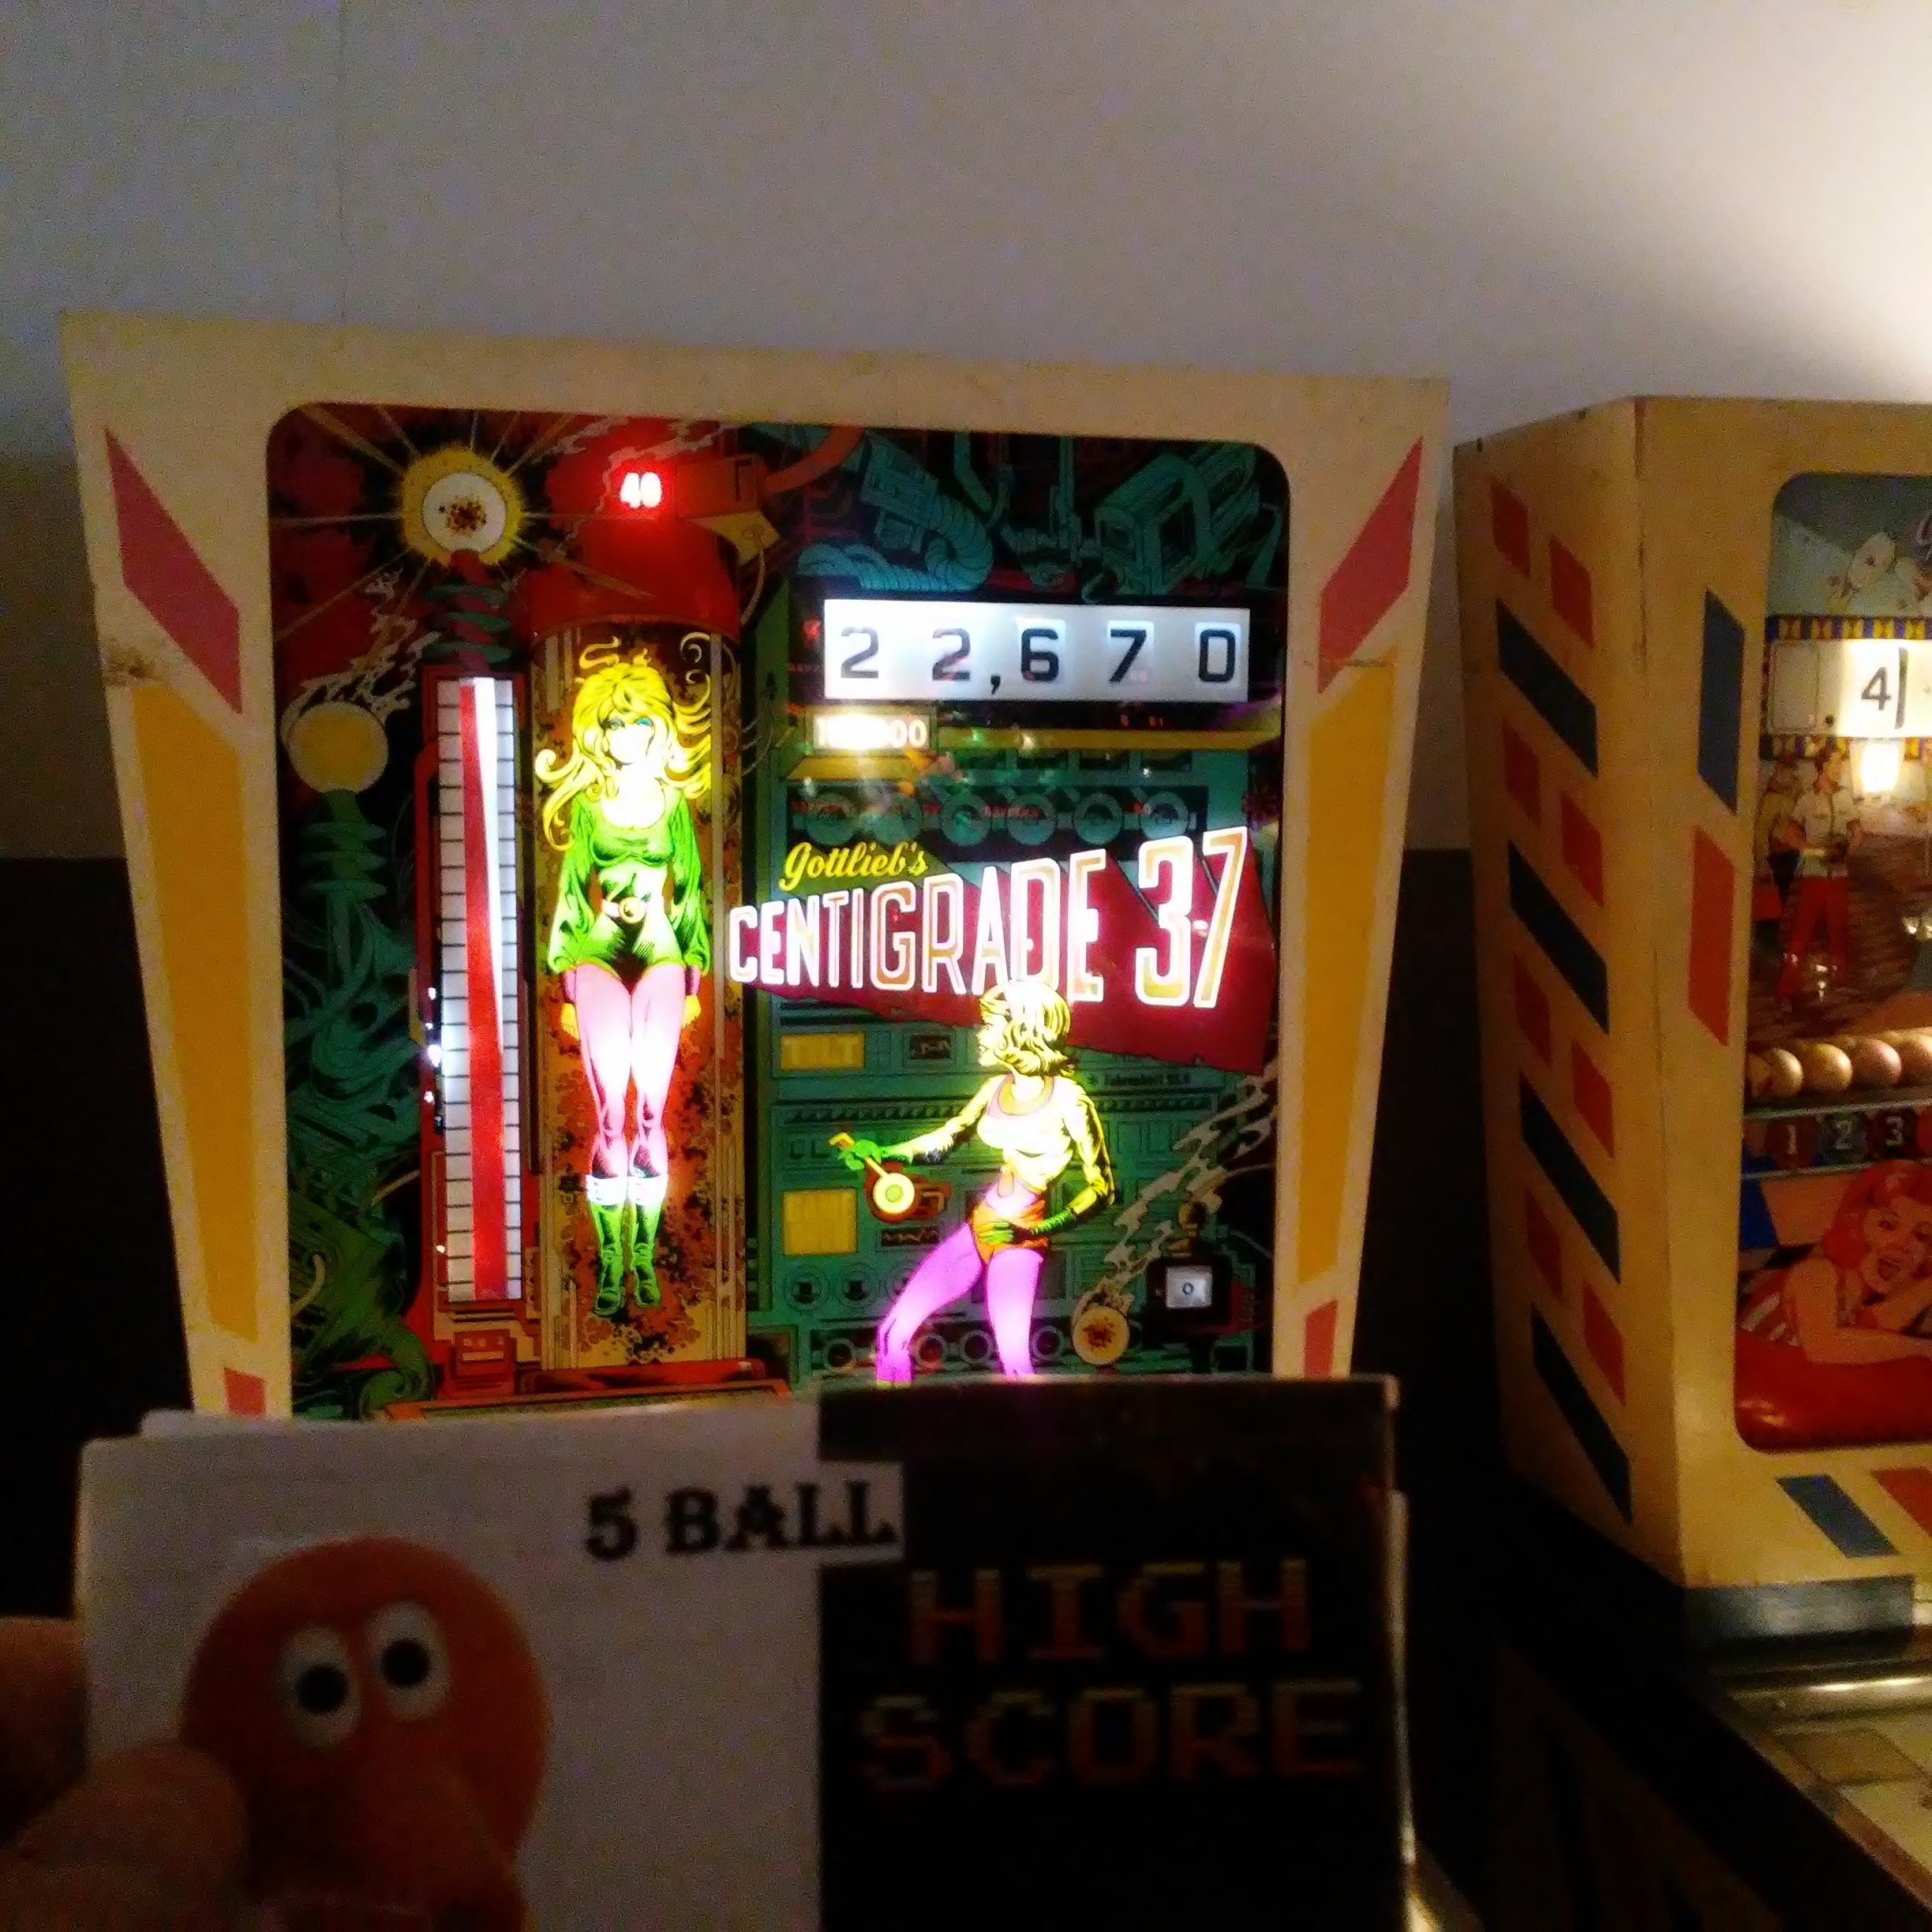 Pjsteele: Centigrade 37 (Pinball: 5 Balls) 122,670 points on 2018-03-03 20:12:12